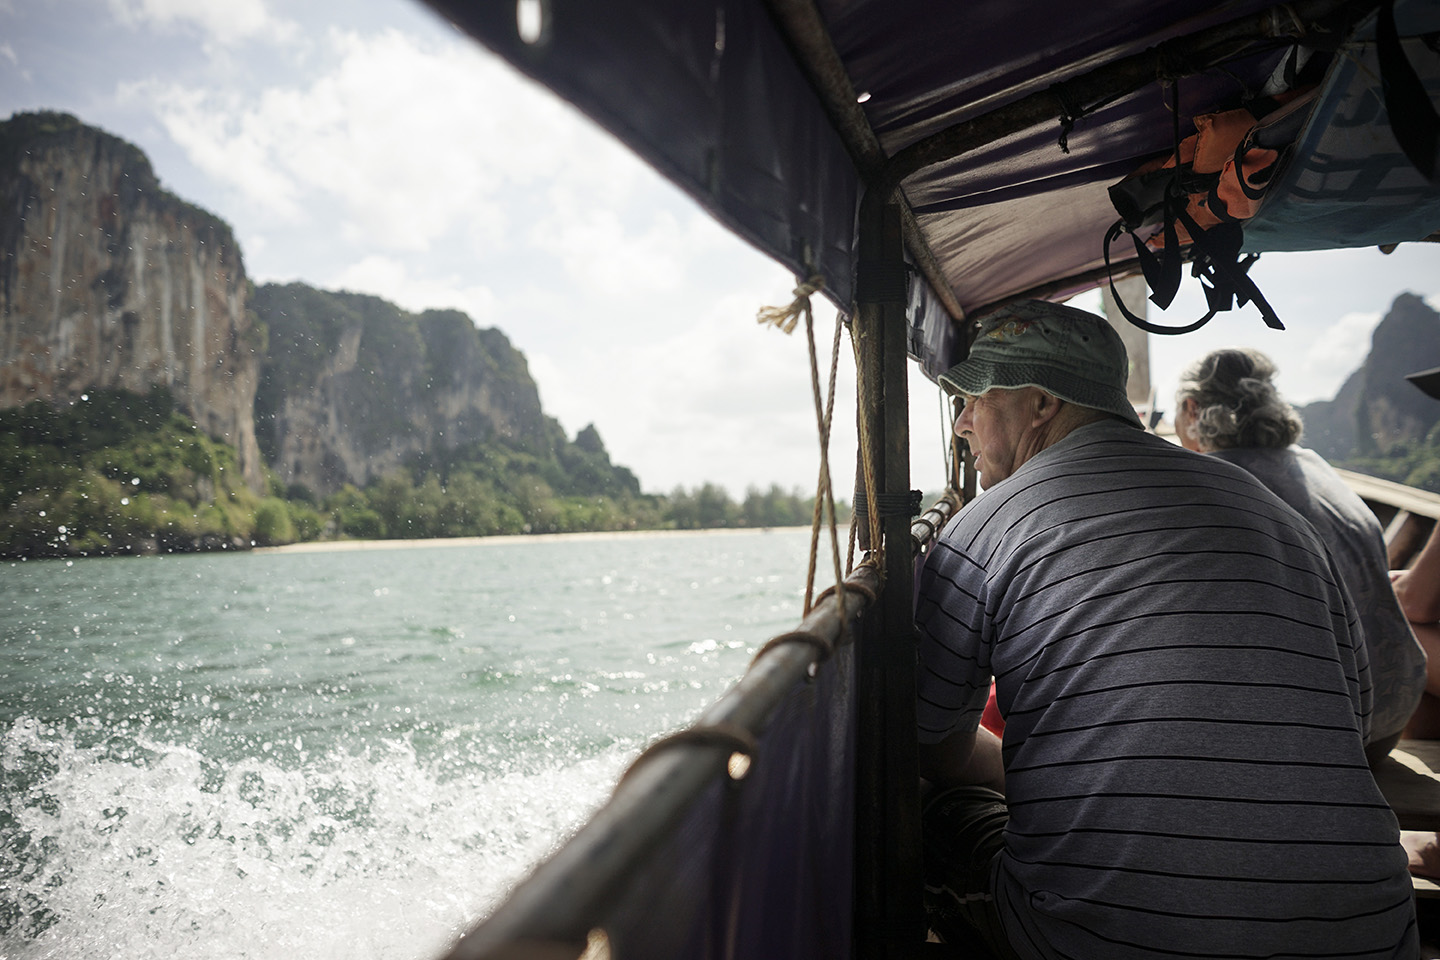 To Railay_001.jpg